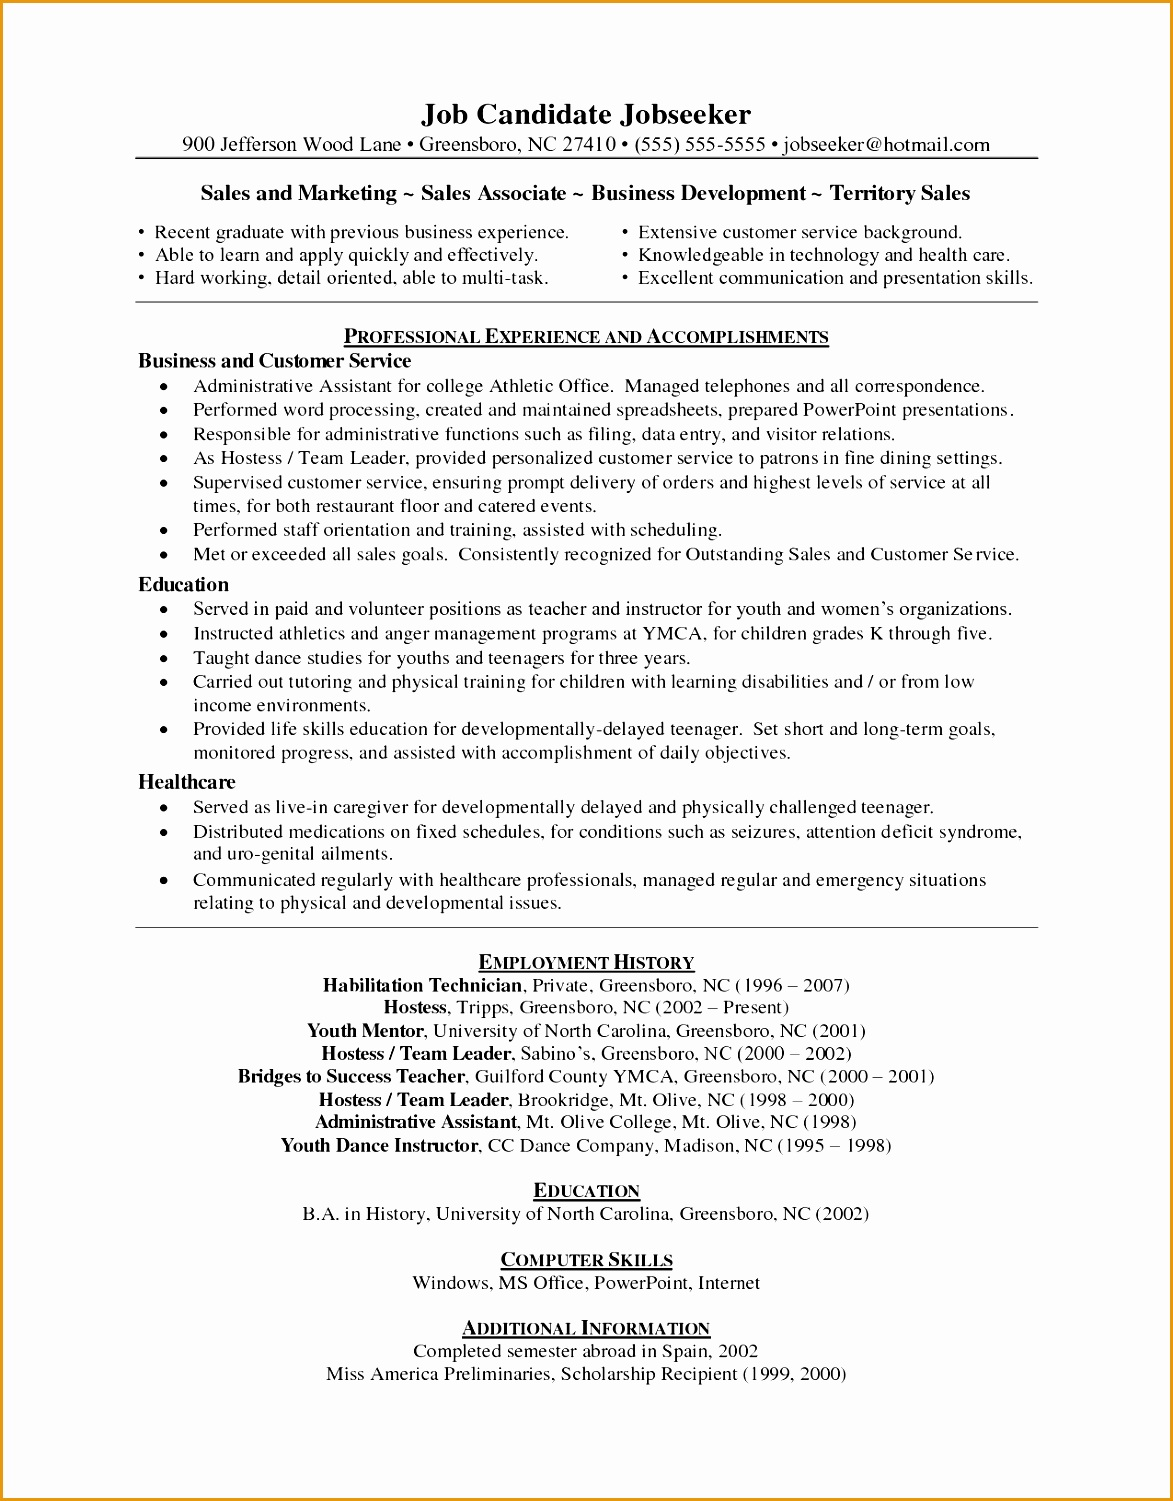 Research Associate Resume Sample 7 Sales Associate Resume Skills Free Samples Examples